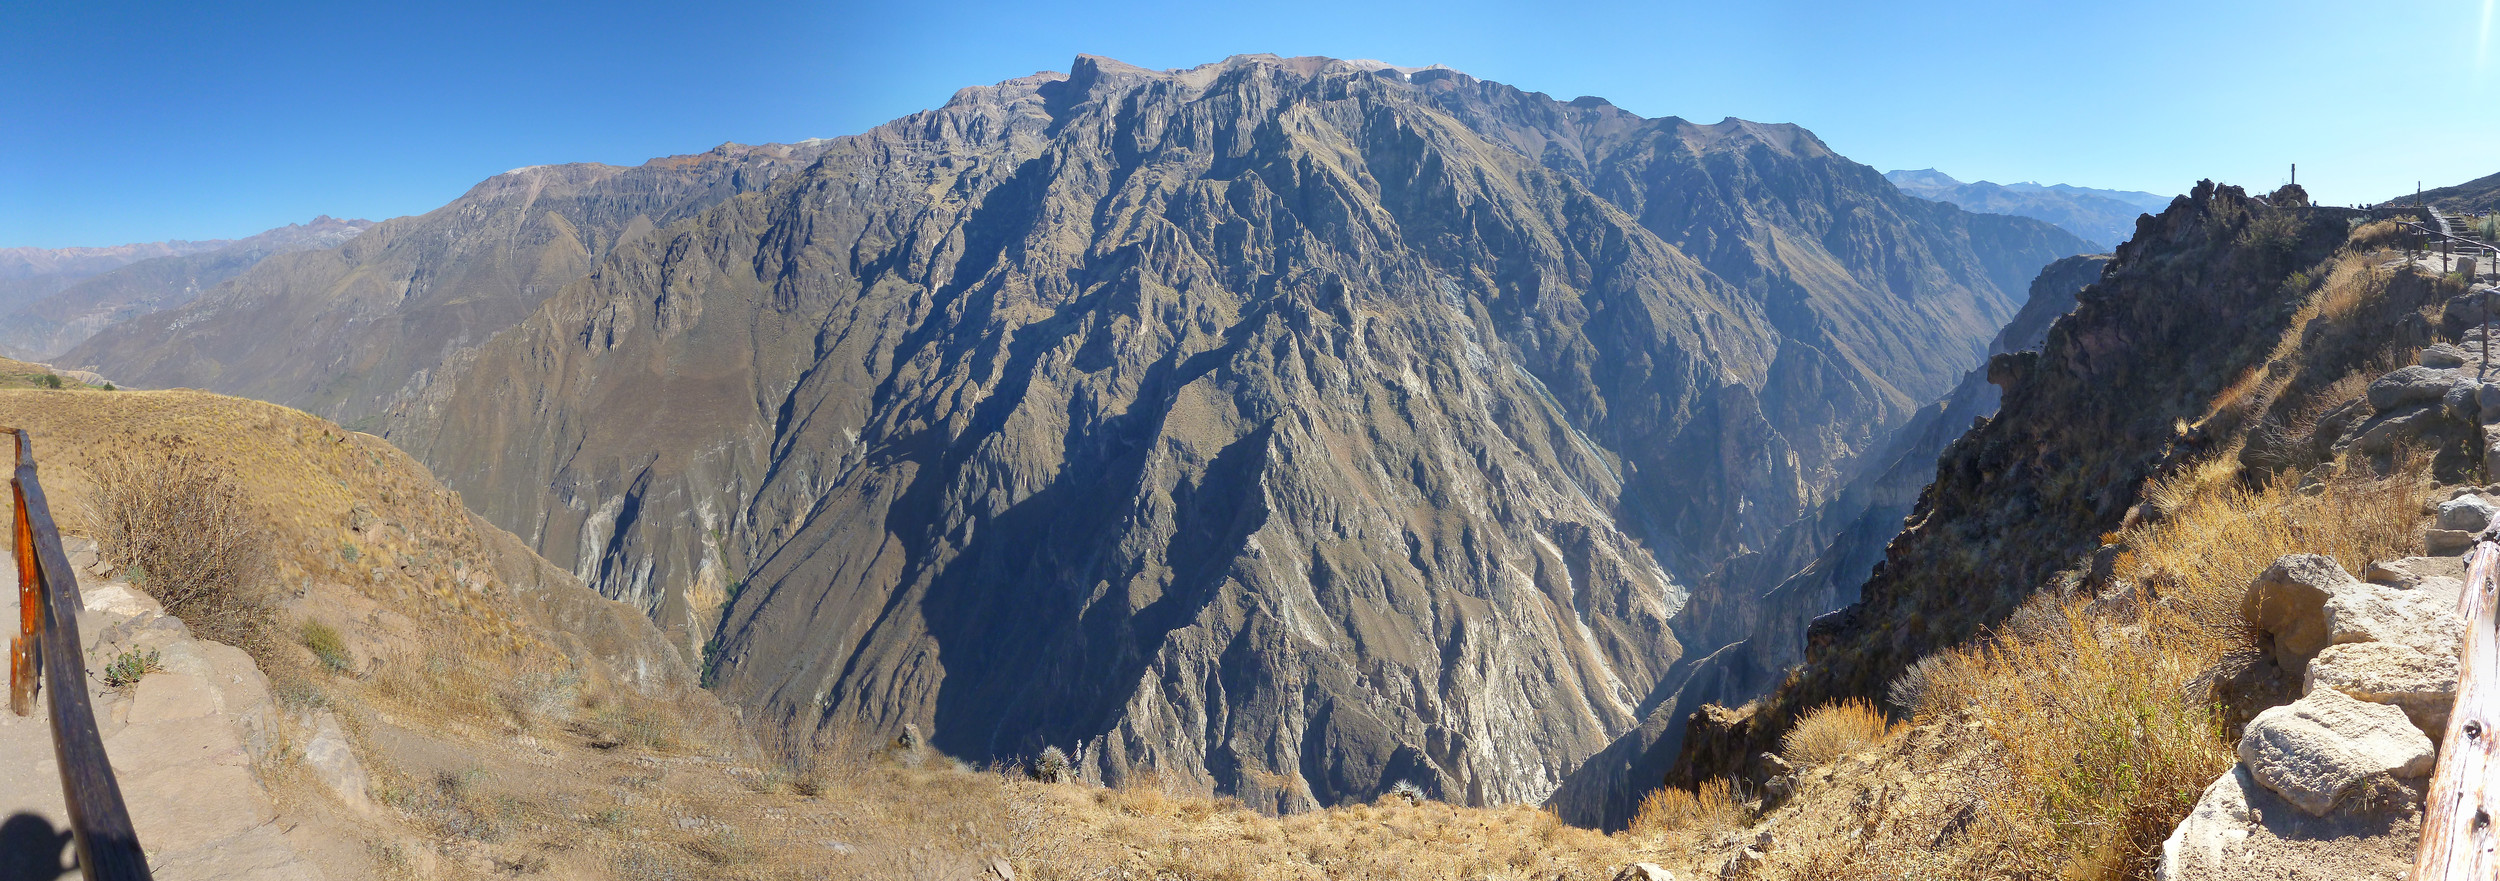 The mighty Colca canyon.